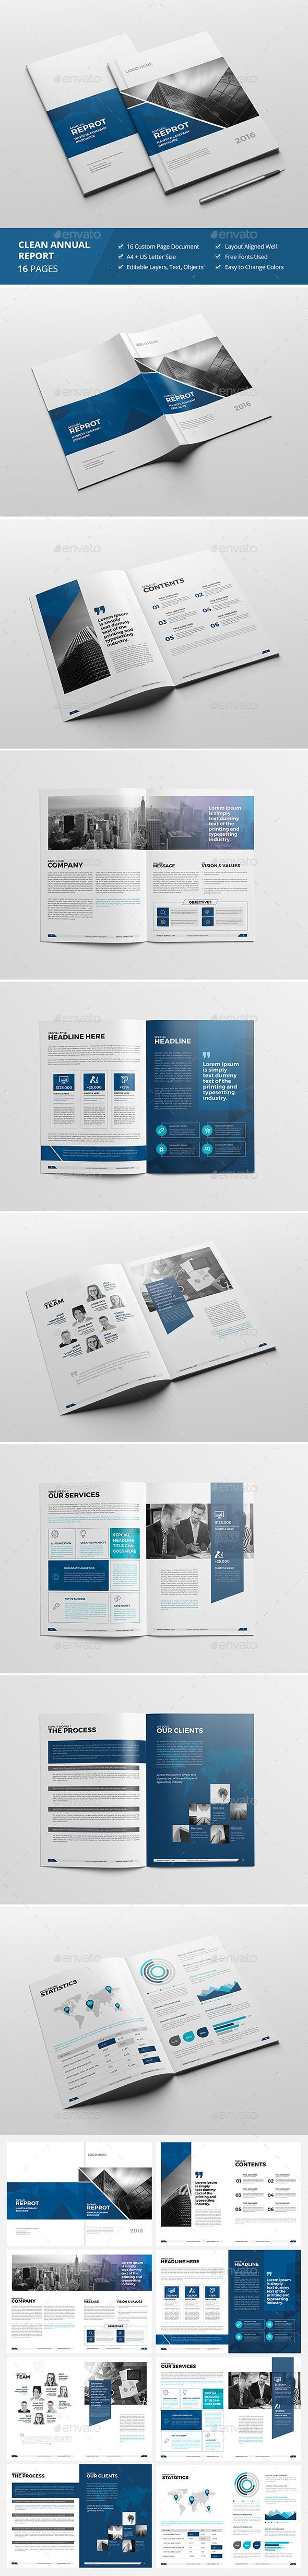 Haweya Modern Annual Report This InDesign Brochure Template is Clean & Professional. Create your company's documentation quick and easy. The template comes with organized layers, easy to customize & change colors. Multipurpose Usage This Template is suitable for any project purpose. Very easy to use and customize. It can be used as : Company Brochure / Coporate Brief / Agency Brochure / Annual Report / Features: Adobe InDesign (.Indd) + Idml A4 + U.S Letter size included ( 16 Pages )…